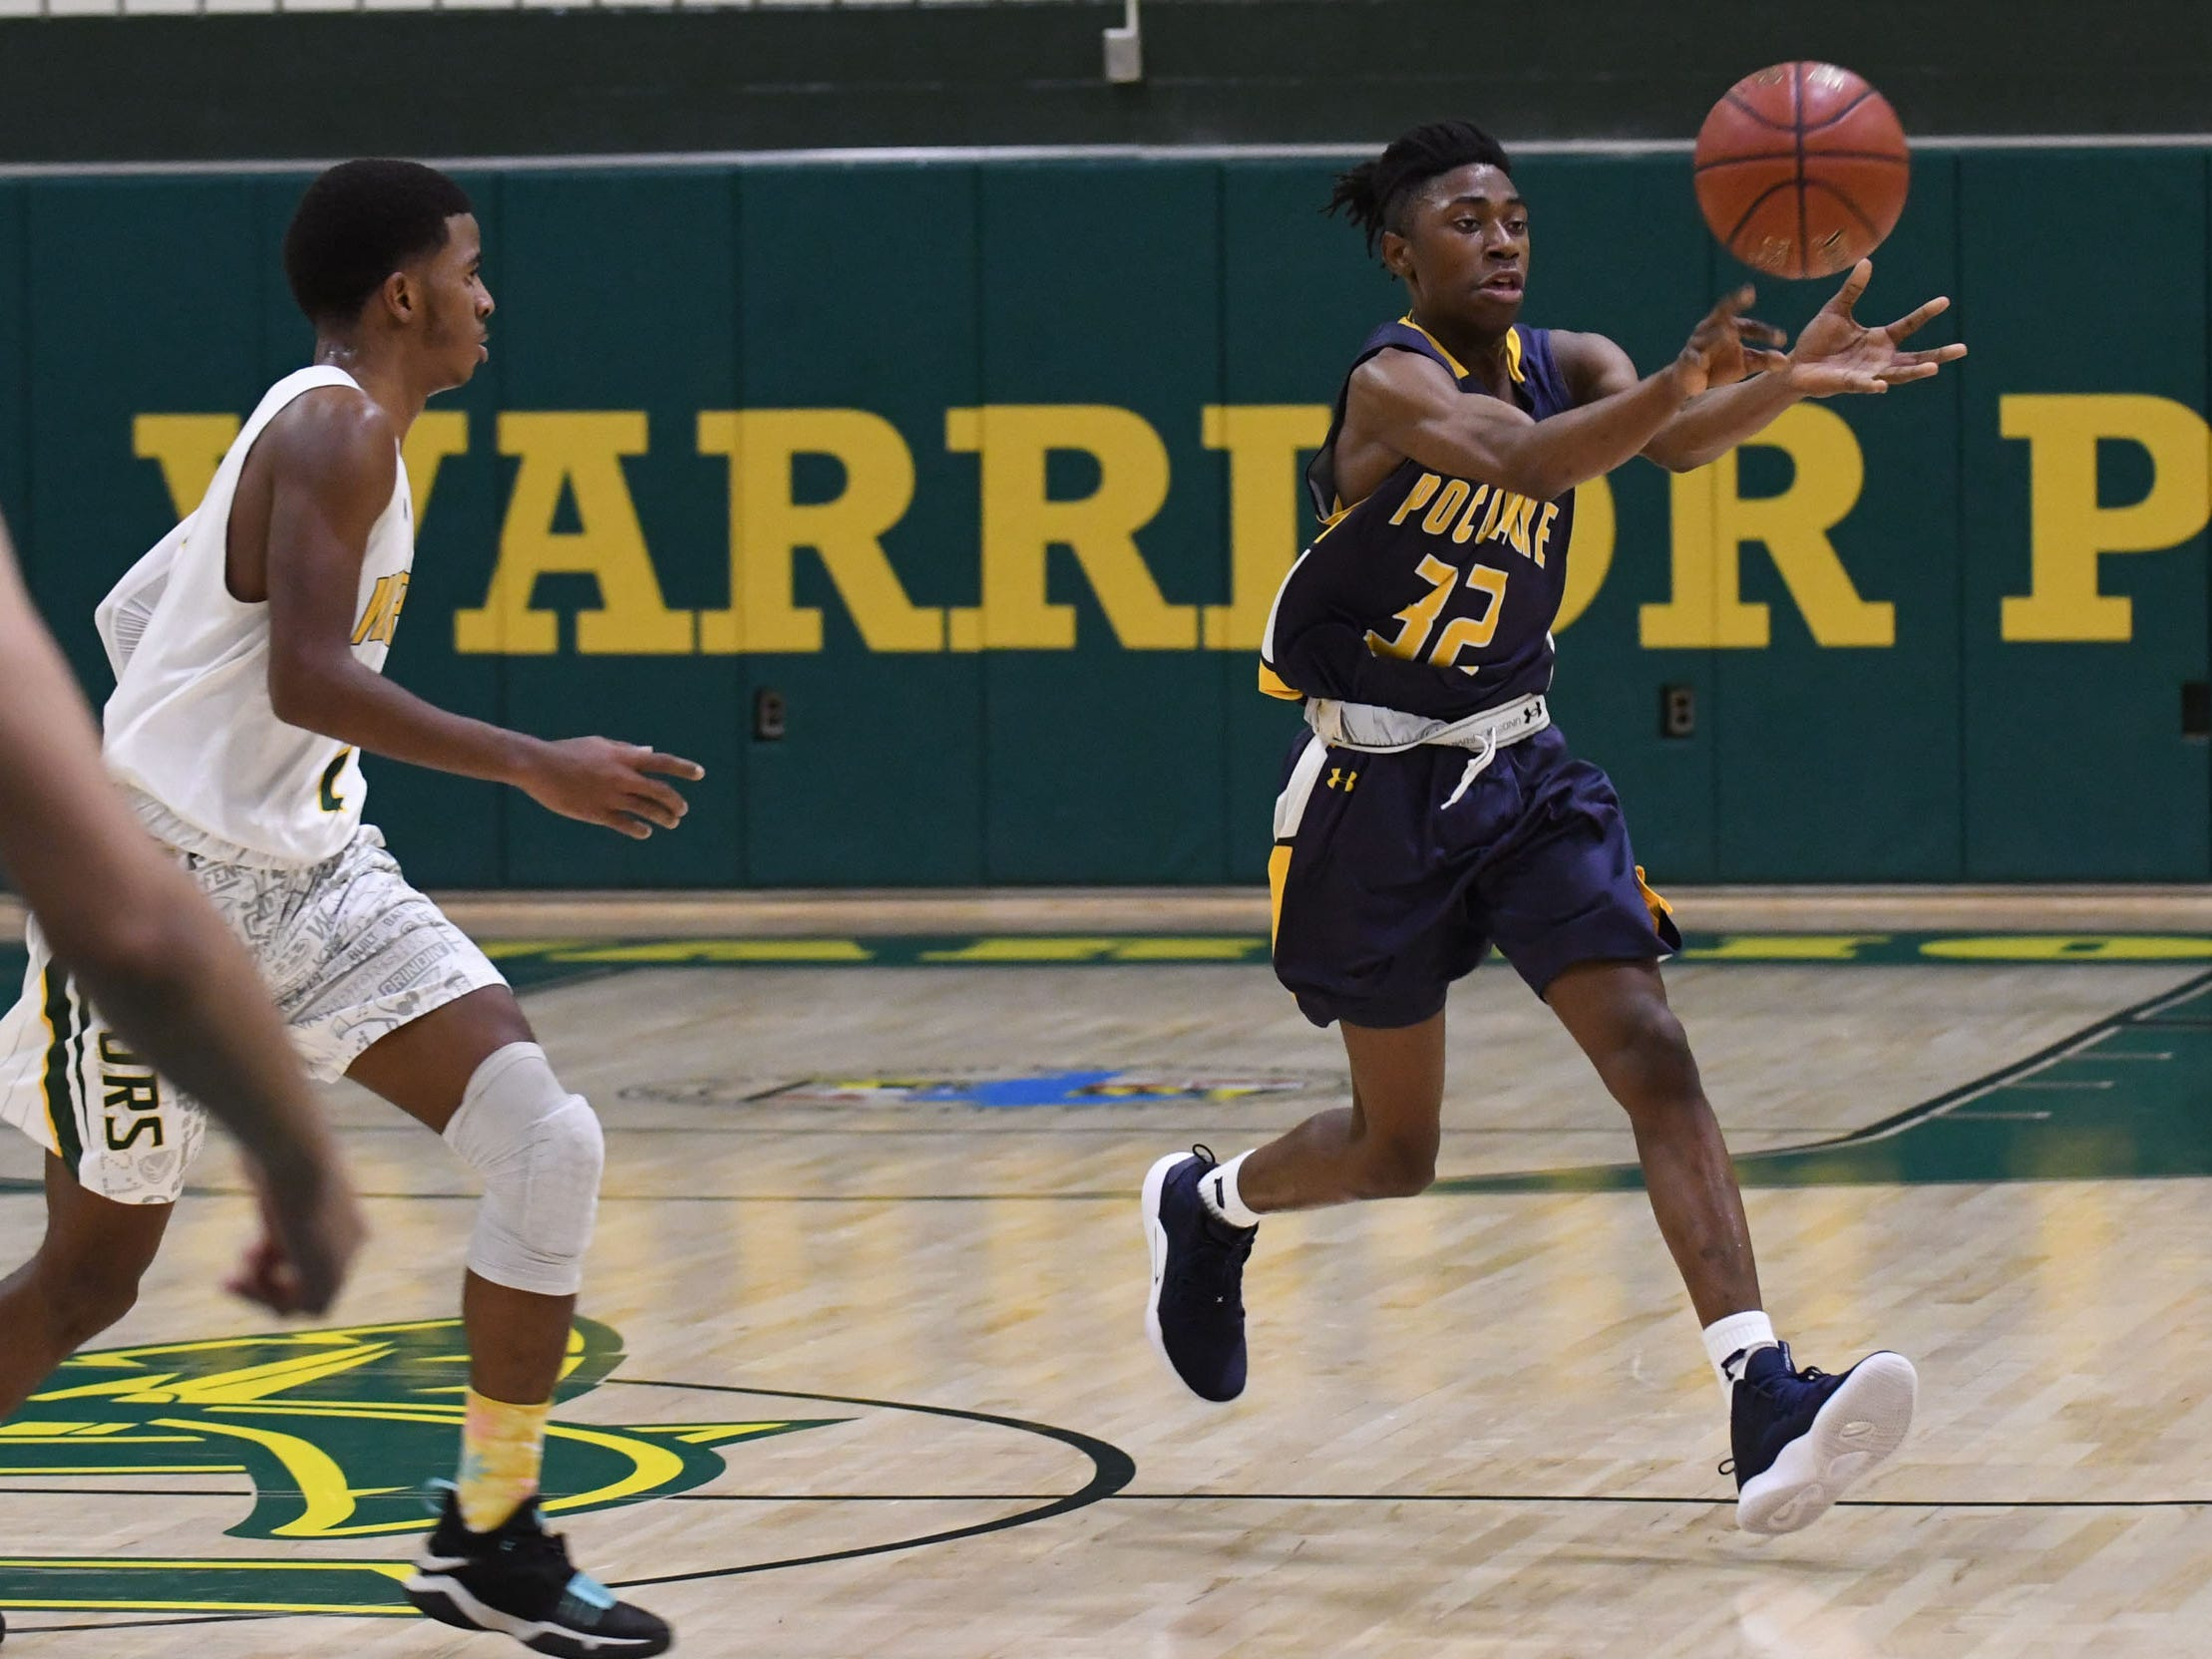 Pocomoke's Isiah Johnson with the pass to his teammate against Pocomoke on Tuesday, Jan 9, 2019.